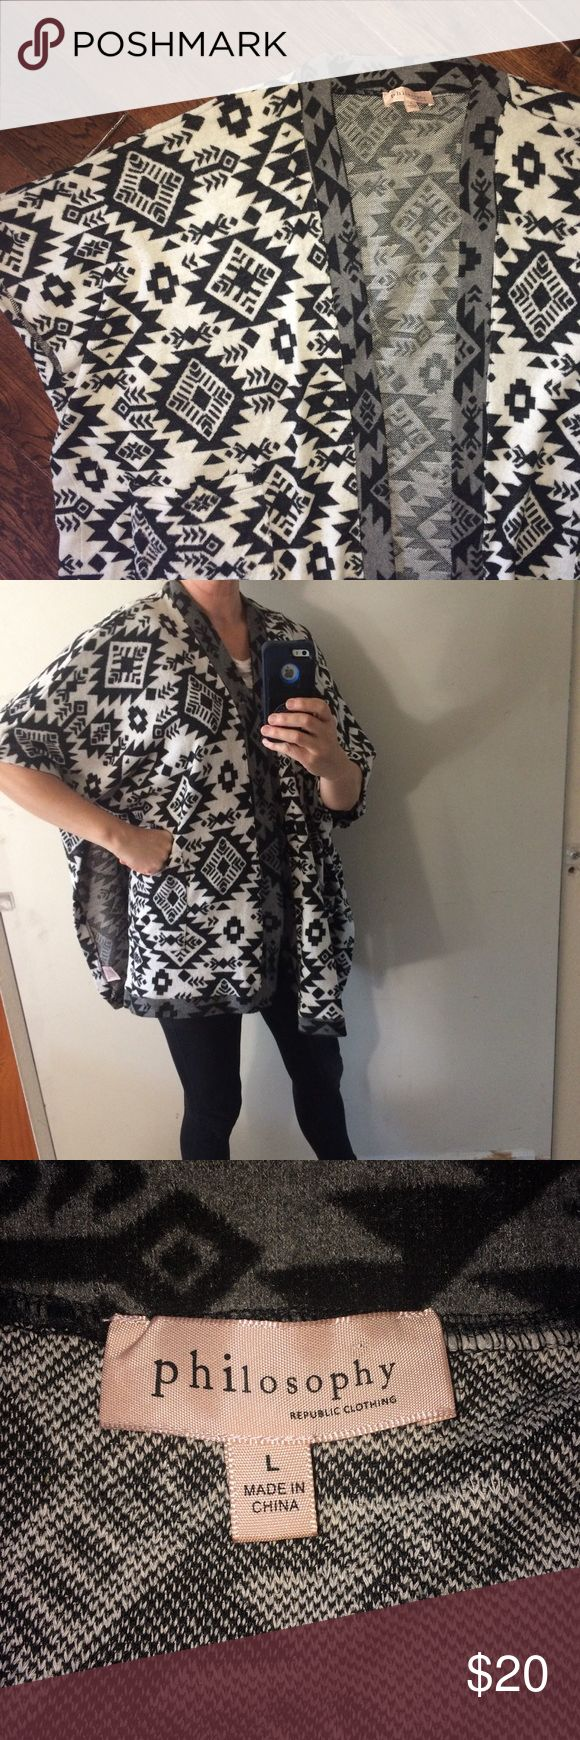 """Philosophy Open Front Black & Cream Print Poncho Very good used condition.58% Polyester, 30% Cotton, and 12% Viscose. Machine wash. For reference, I am wearing the poncho in the second photo and I'm almost five feet 9"""" tall and weigh about 140 pounds. CE Philosophy Sweaters Shrugs & Ponchos"""